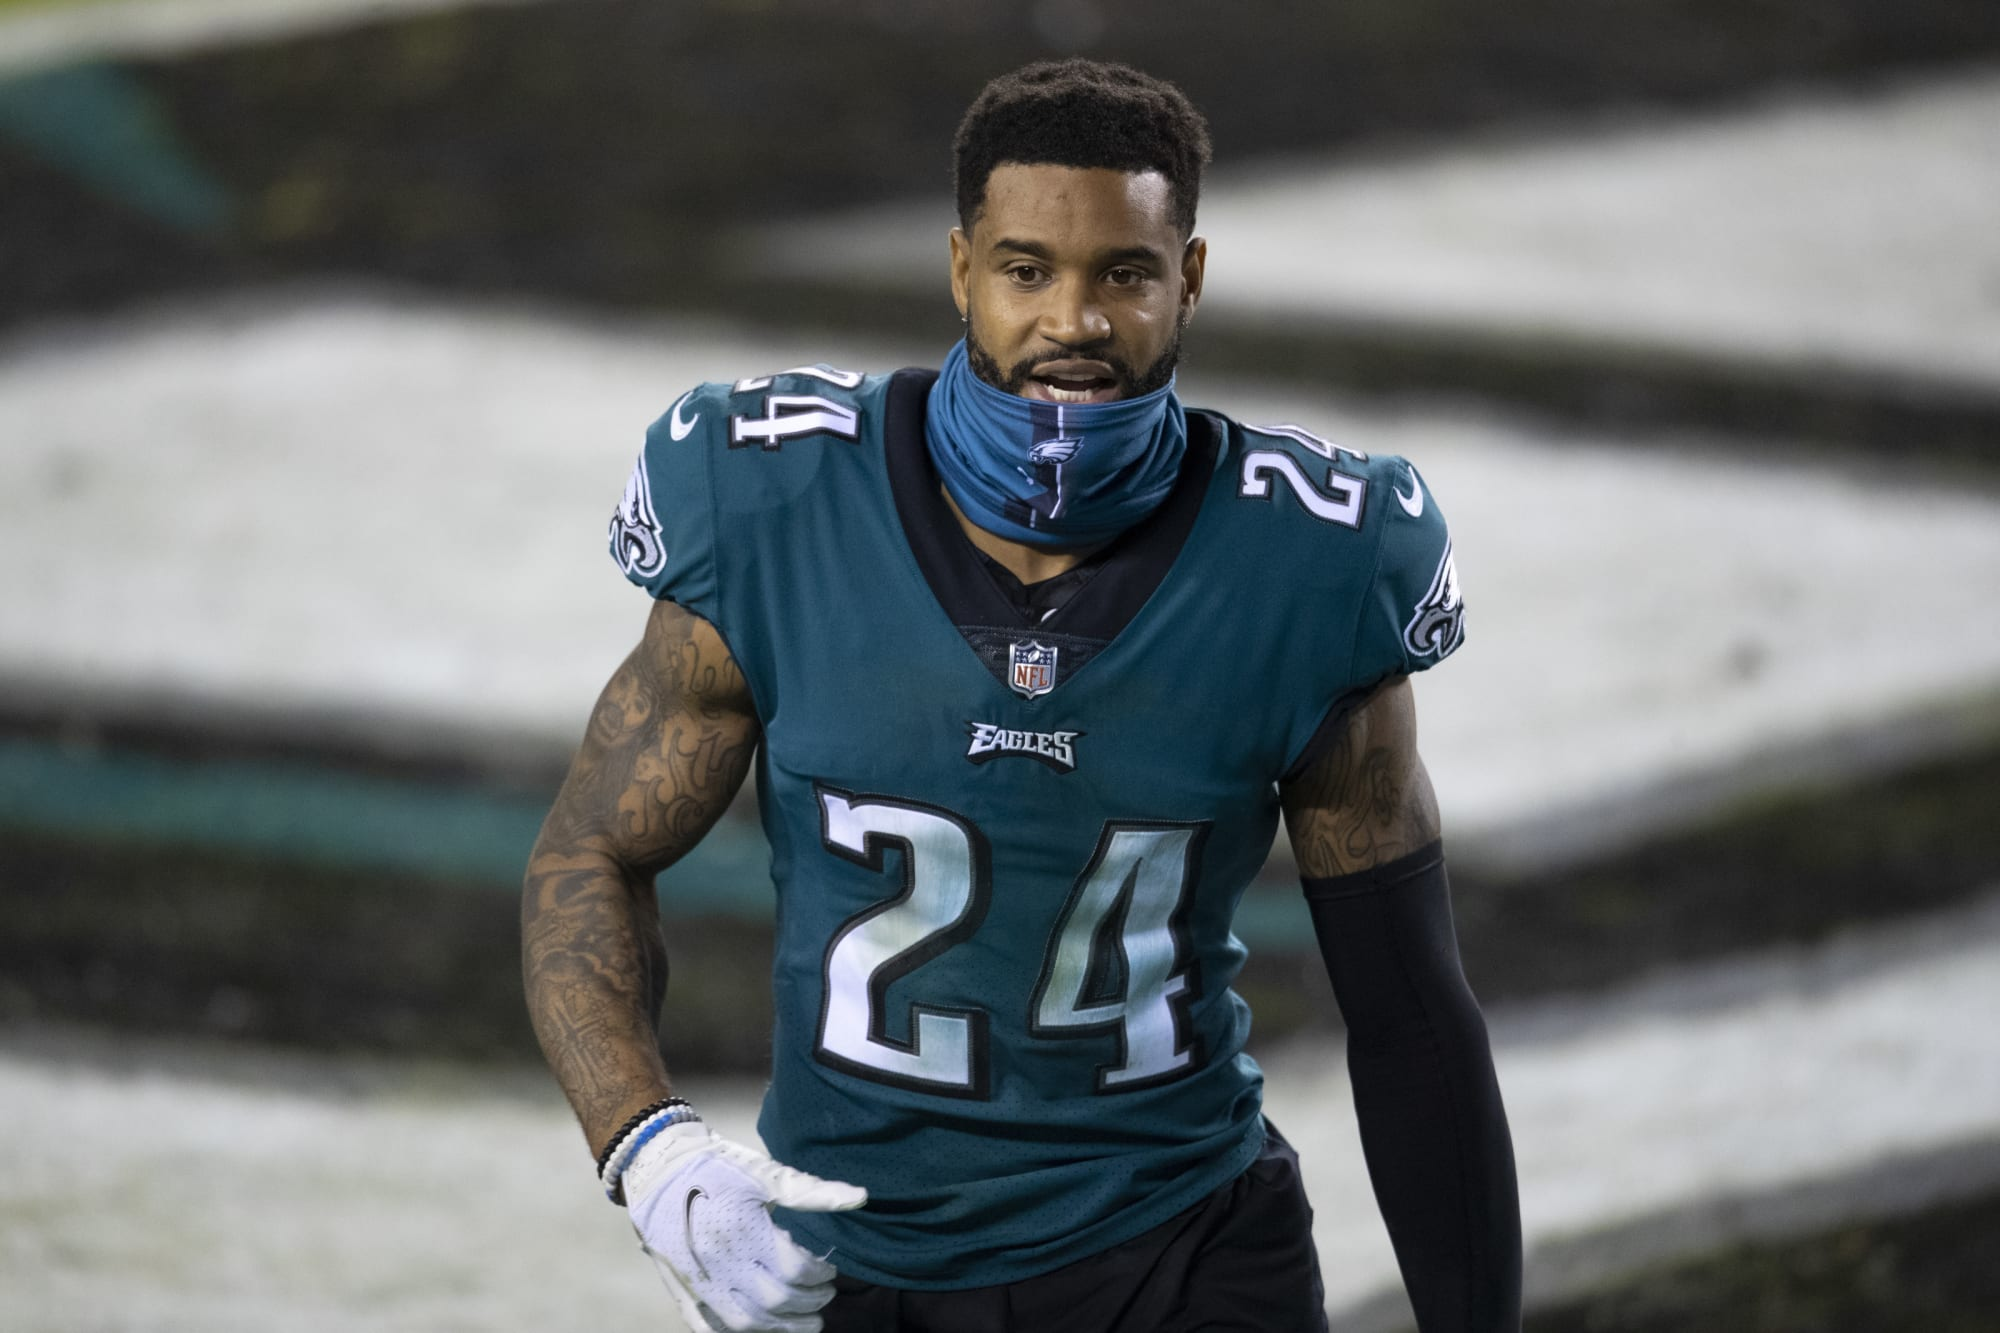 Here's something Philadelphia Eagles fans want to see from Darius Slay